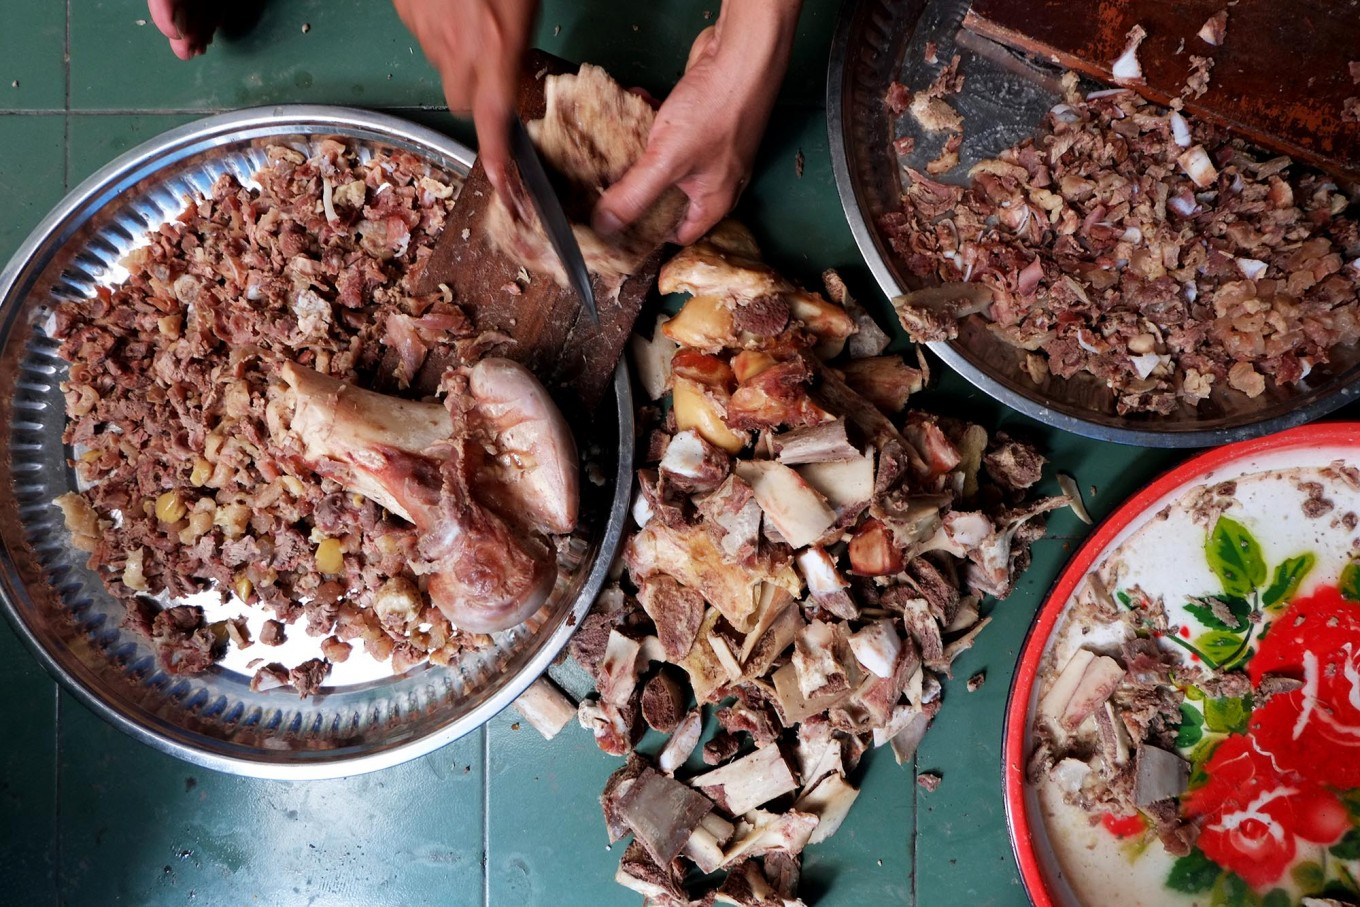 The more, the merrier: A committee member of the Darussalam Mosque in Surakarta, Central Java, slices beef into small pieces to use as one of the ingredients of Samin porridge. JP/ Ganug Nugroho Adi